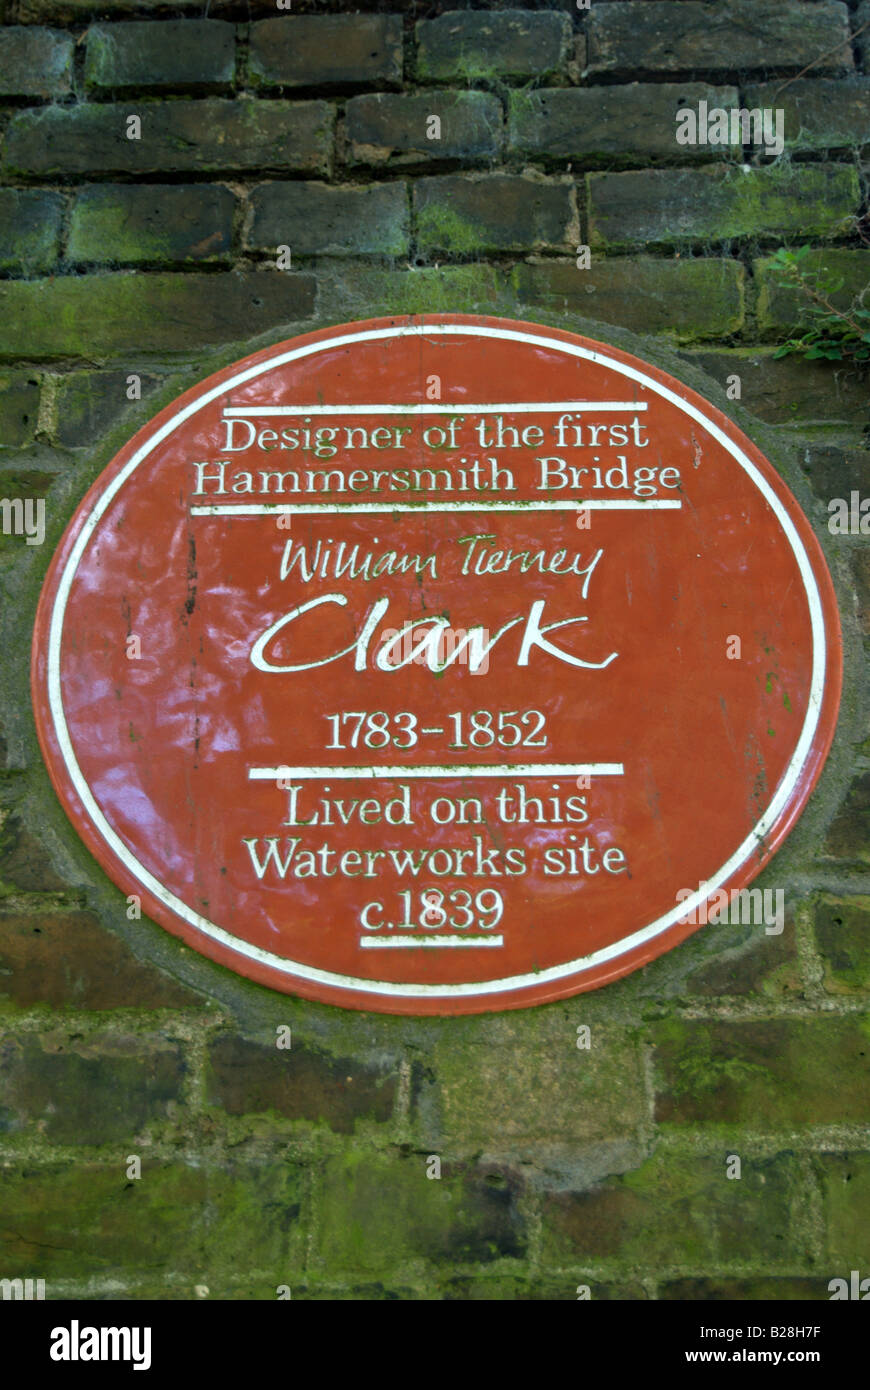 plaque marking where the designer, william tierney clark, of the first hammersmith bridge stayed around 1839, in - Stock Image